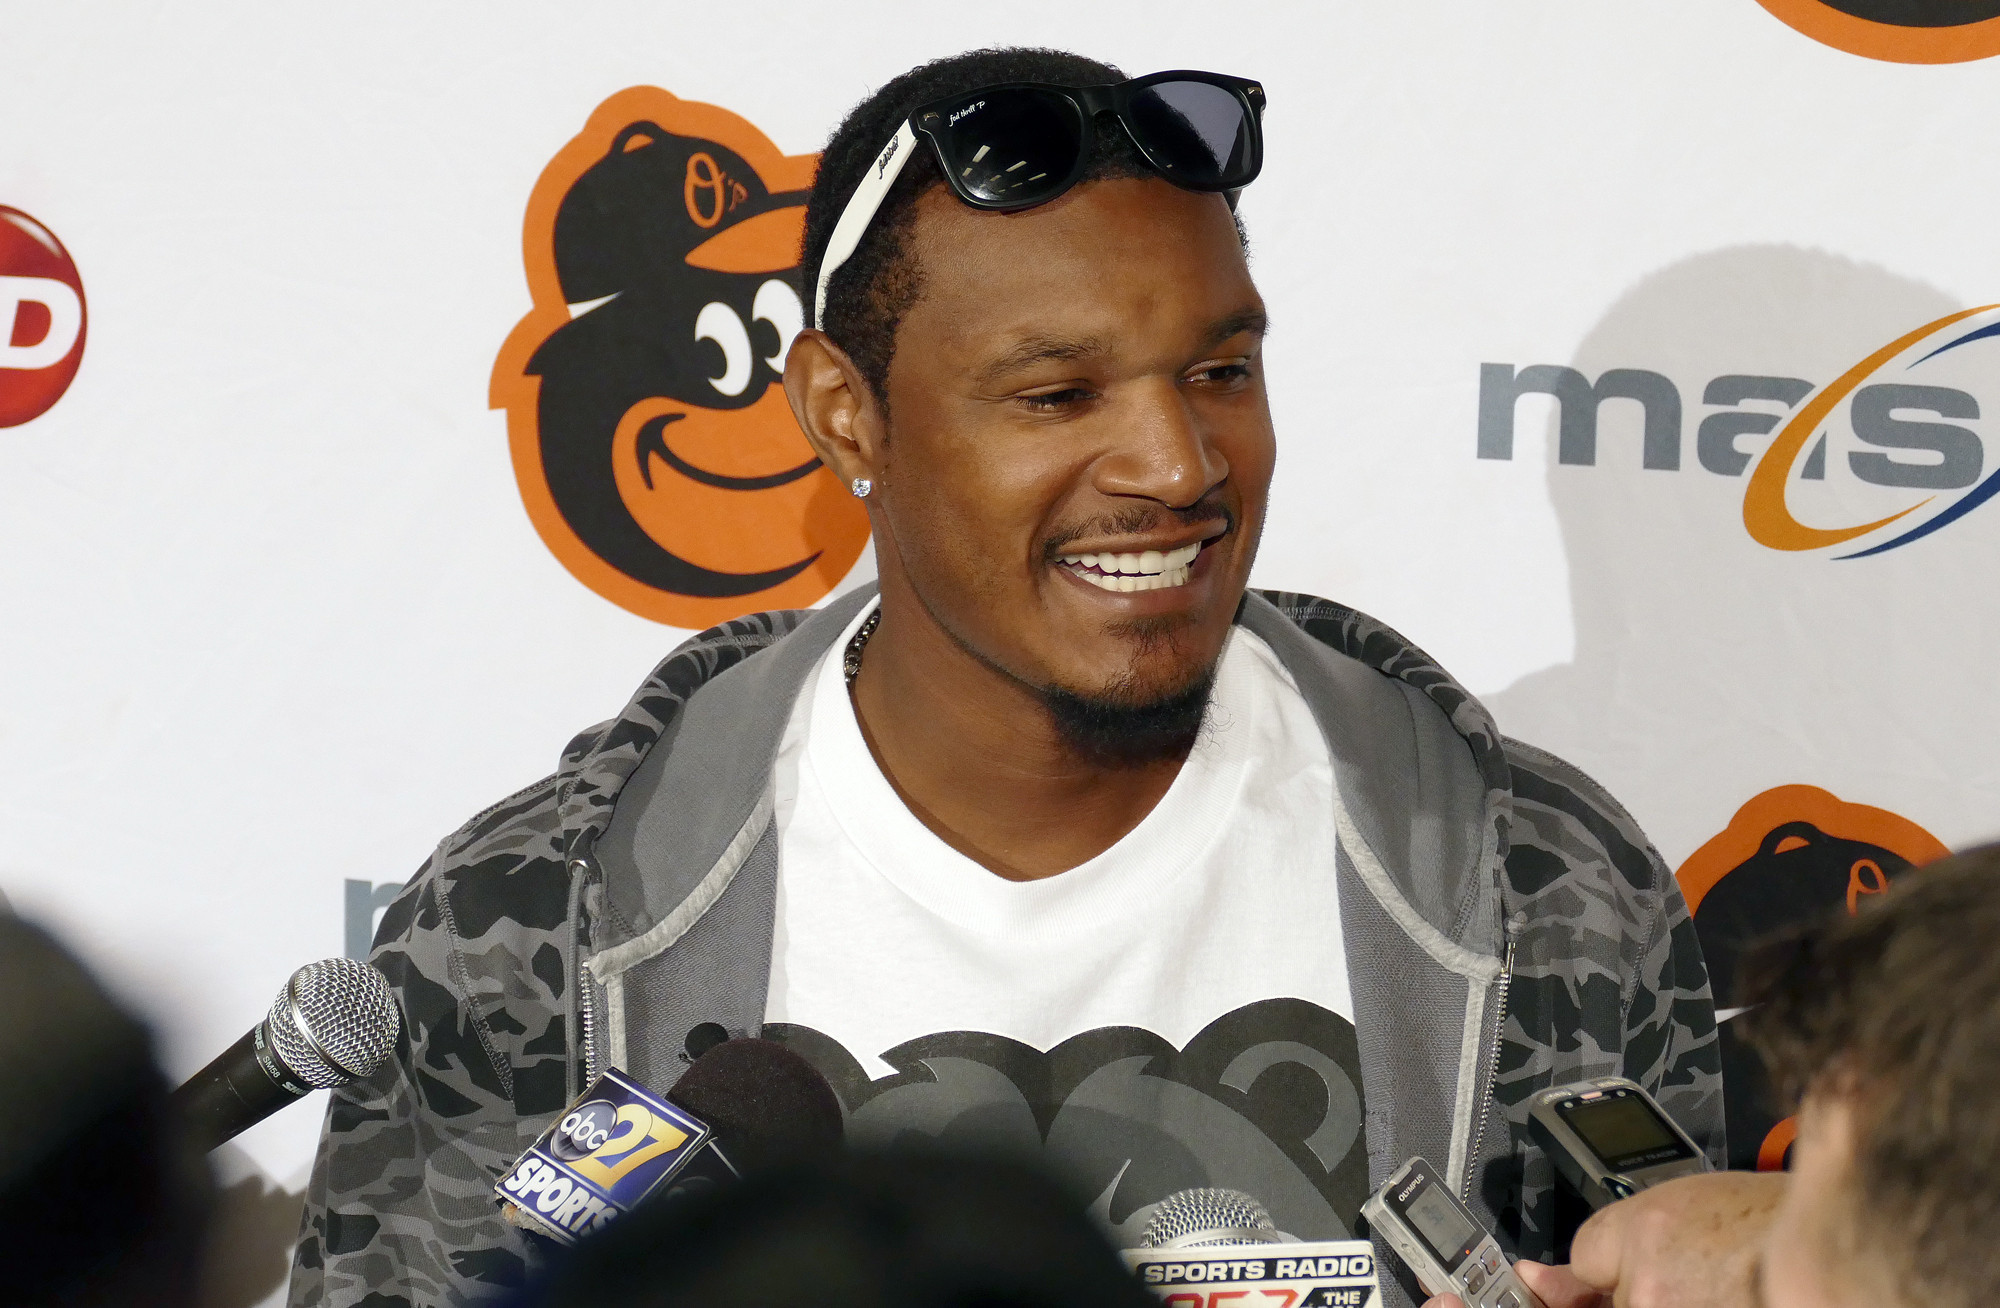 Bal-adam-jones-on-orioles-keeping-core-intact-thats-why-i-wanted-to-stay-here-in-baltimore-20160209